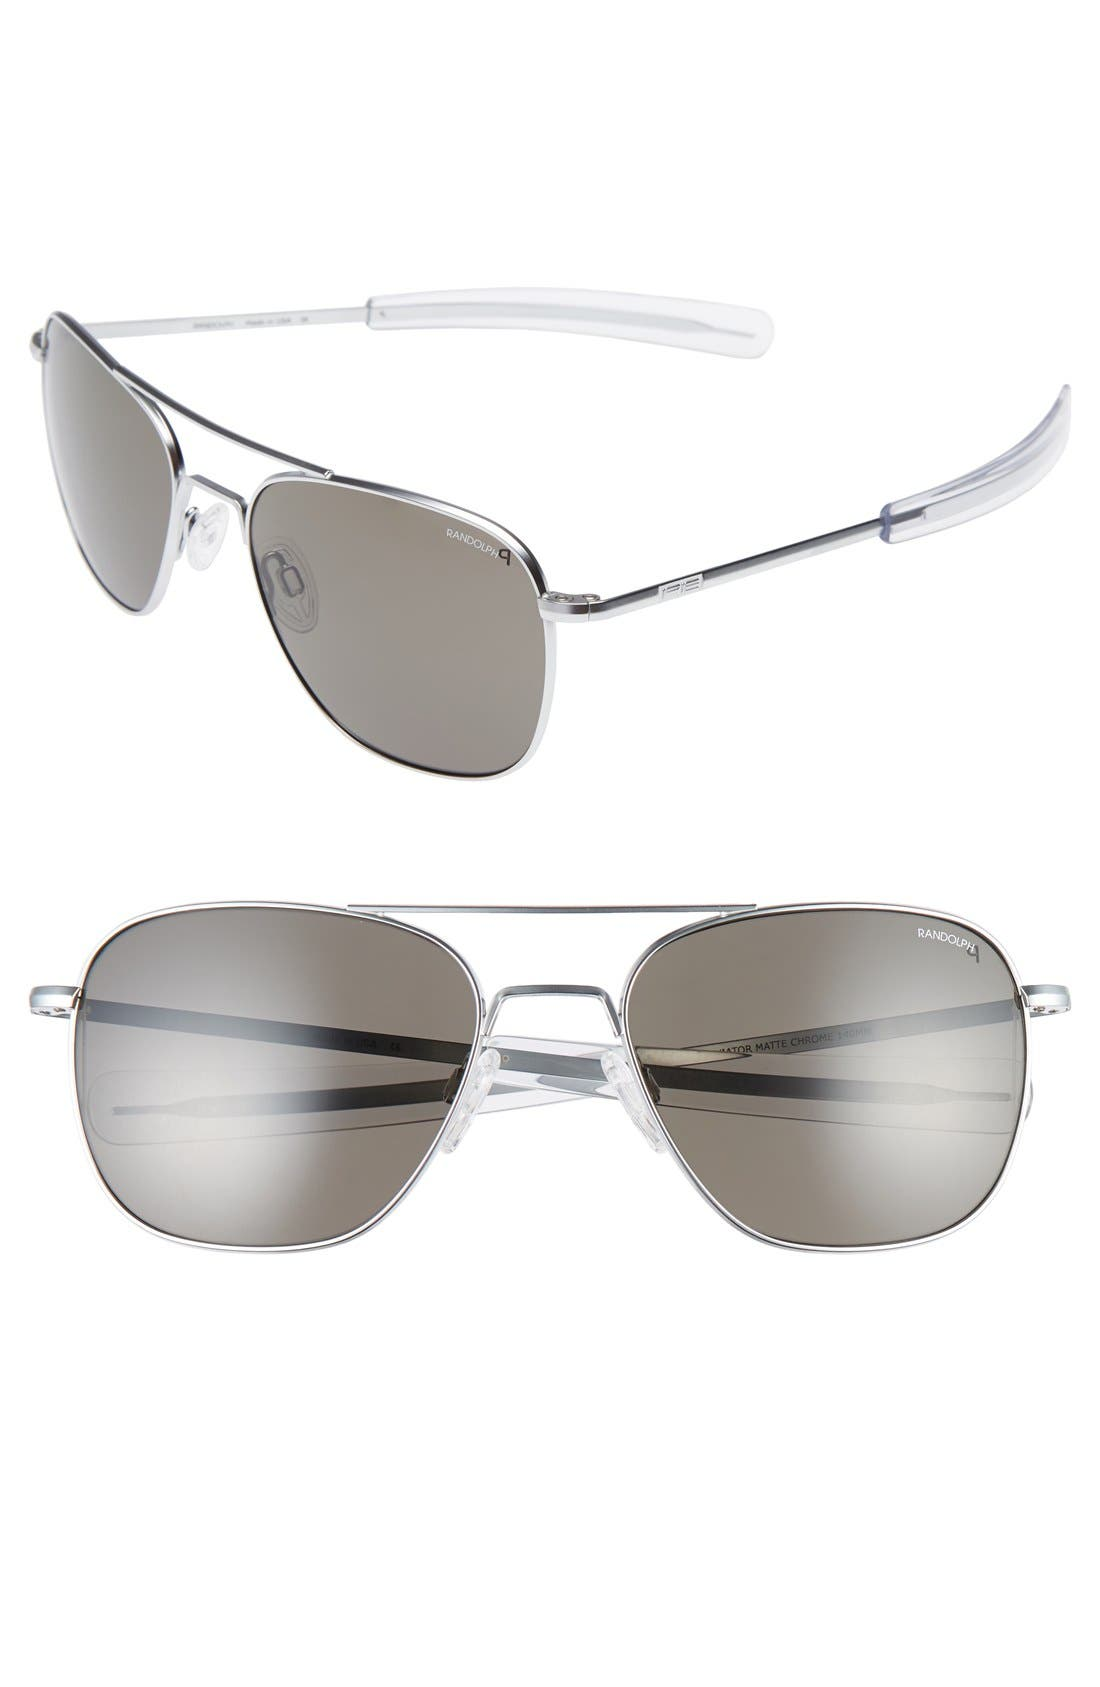 RANDOLPH ENGINEERING 58mm Polarized Aviator Sunglasses